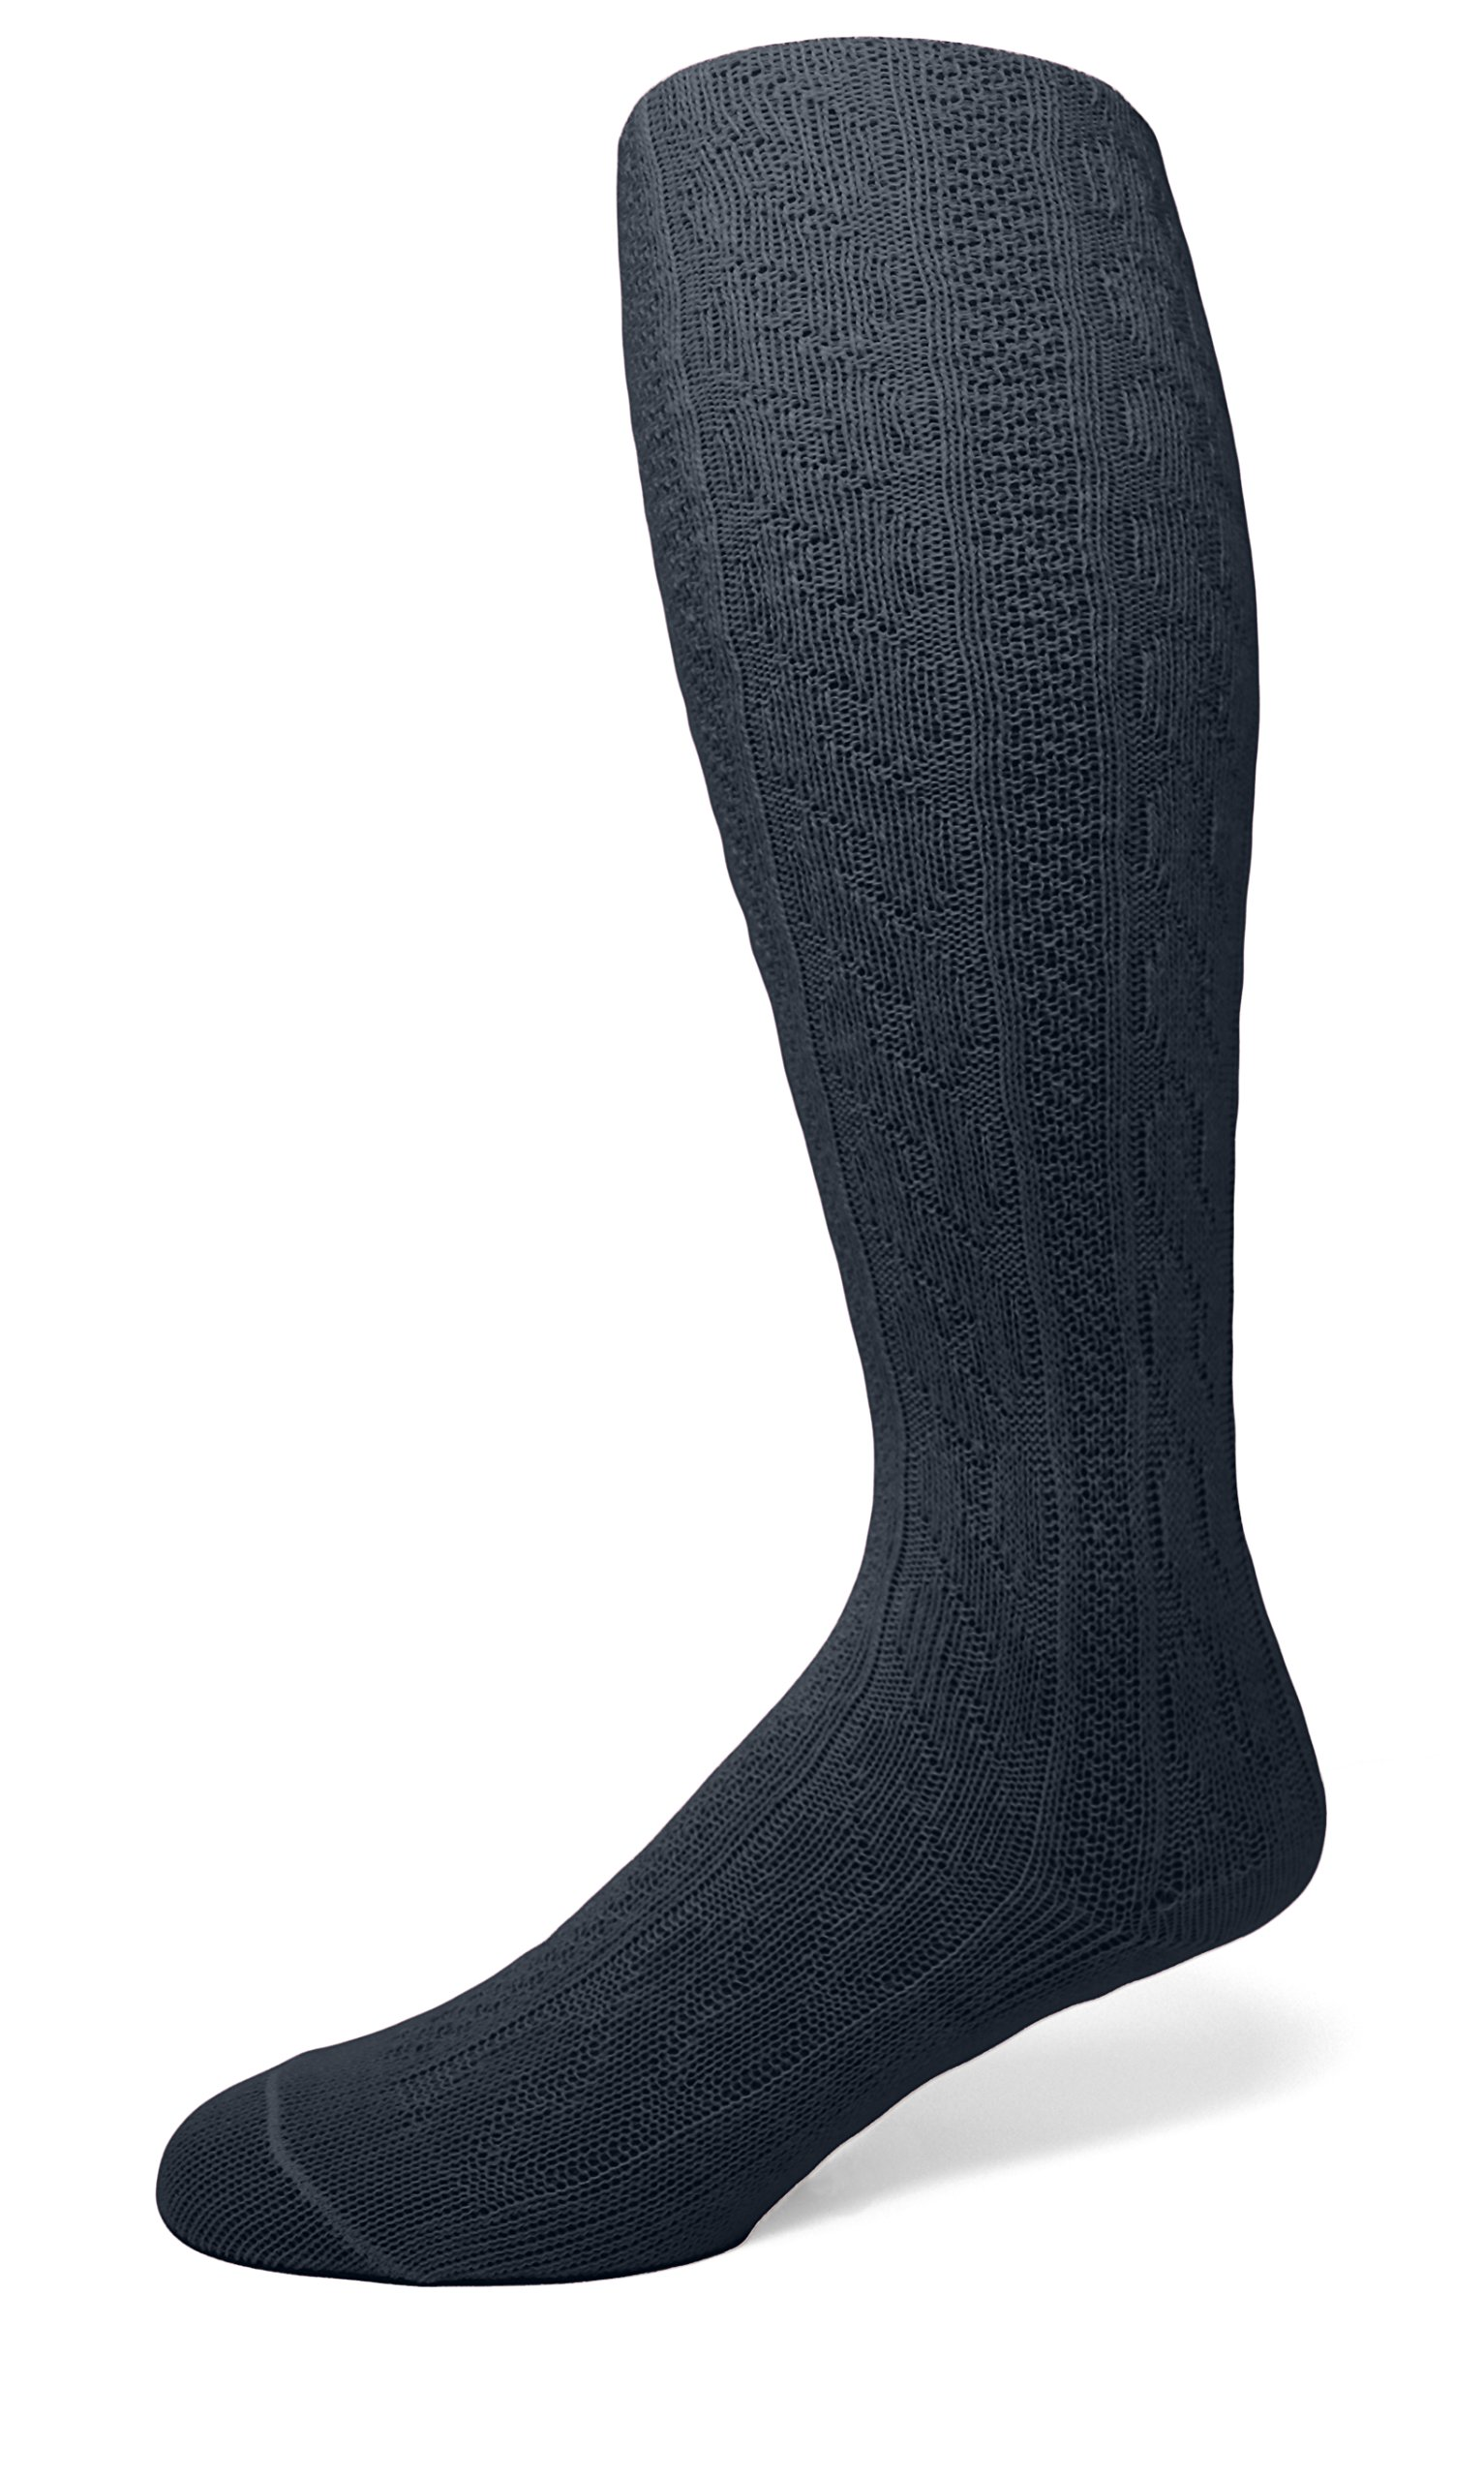 EMEM Apparel Girls' Kids Children's Cable Knit Opaque School Uniform Sweater Winter Tights Hosiery Stockings Navy 12-14 by EMEM Apparel (Image #1)